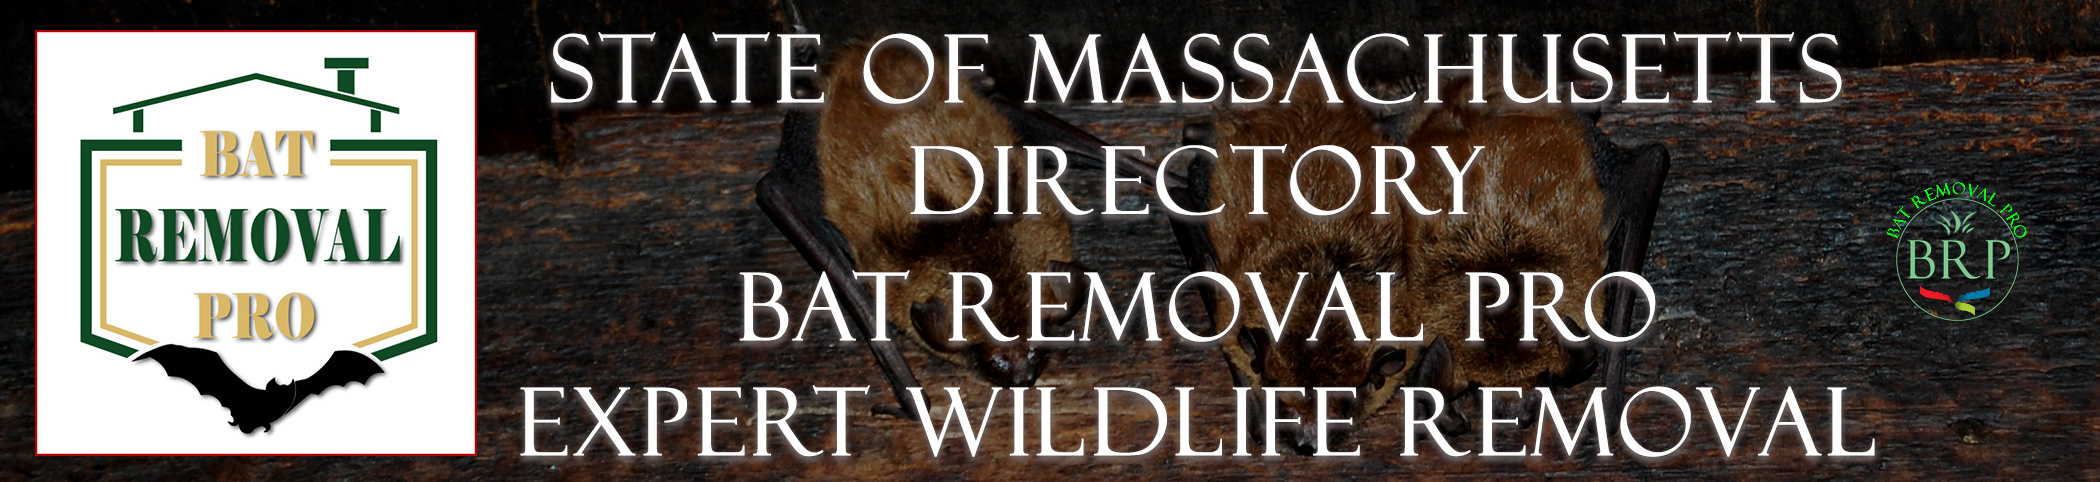 Massachusetts header image at bat removal pro